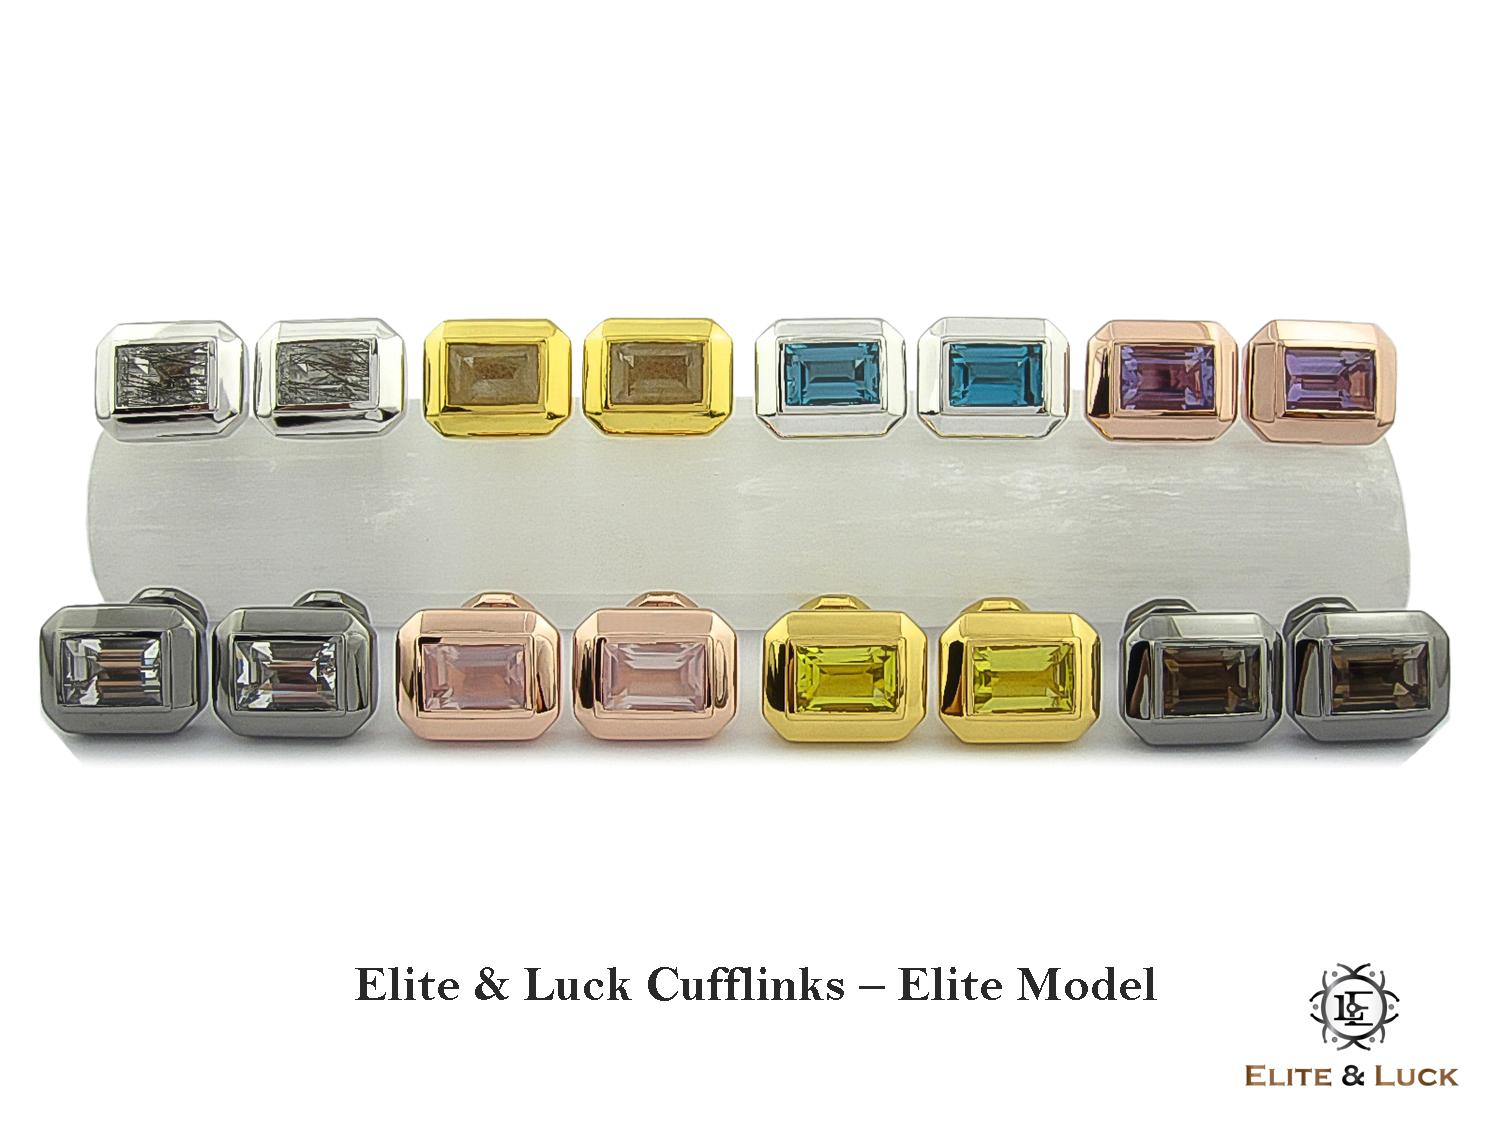 Elite & Luck Gemstone Cufflinks for Men, Elite Model